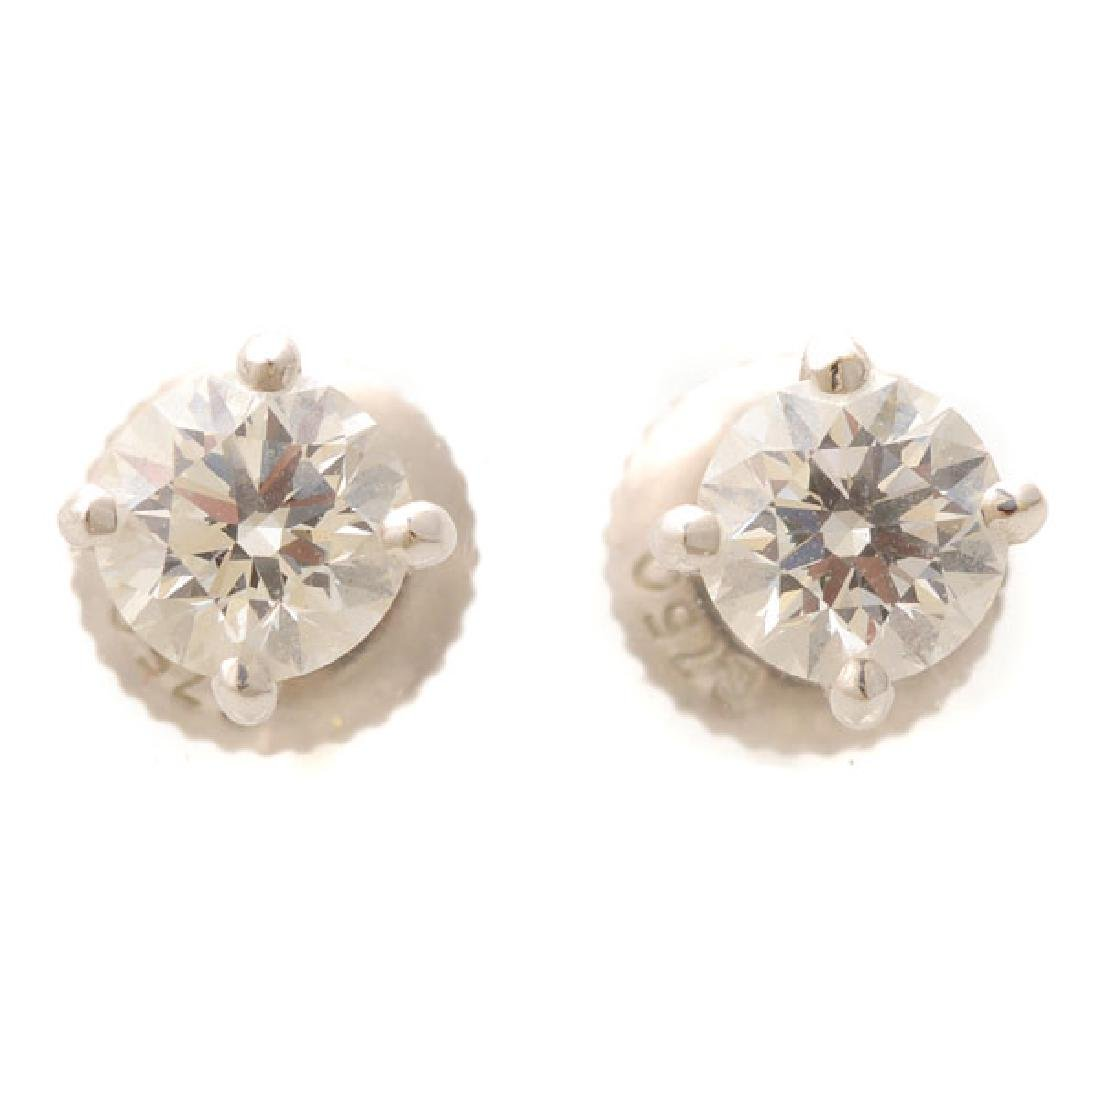 Pair of Diamond, 18k White Gold Stud Earrings.